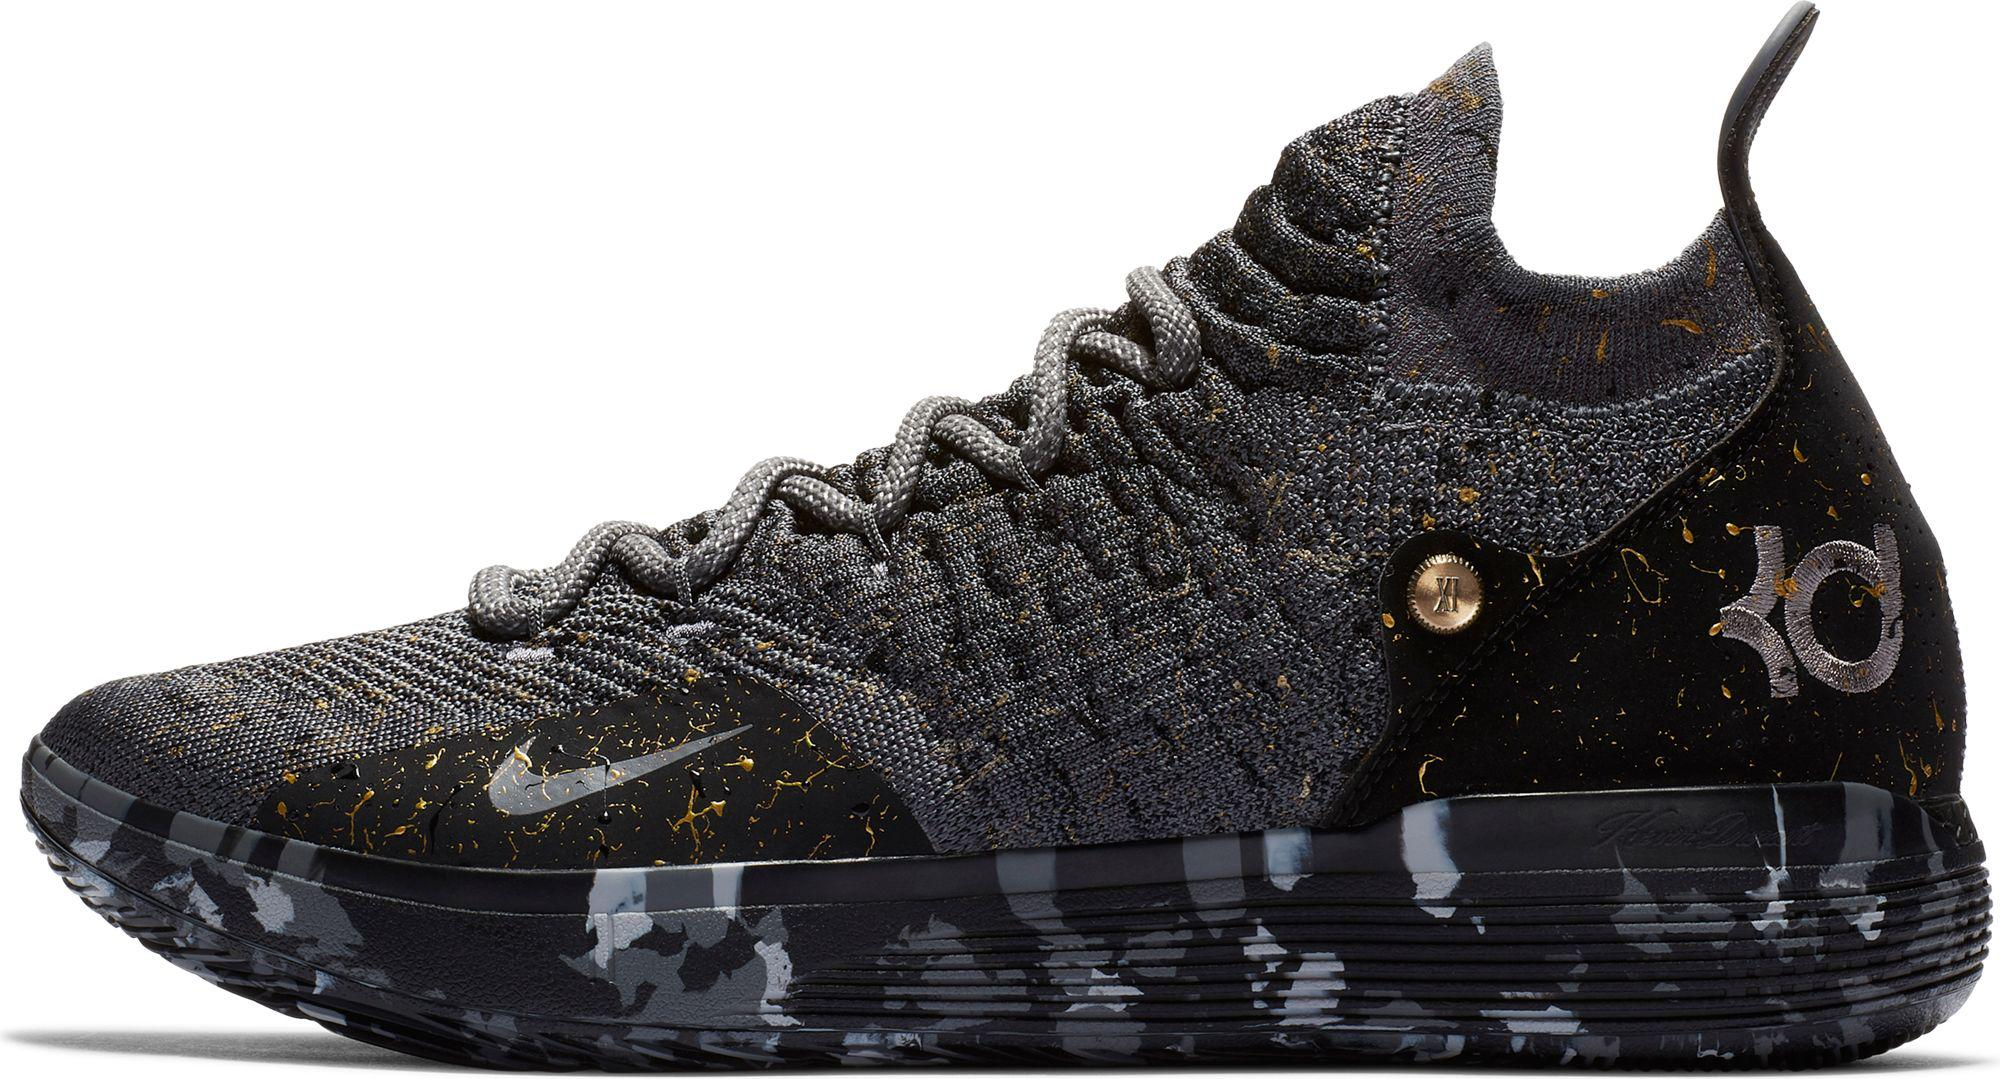 717a525e9110 Lyst - Nike Zoom Kd 11 Basketball Shoes in Metallic for Men